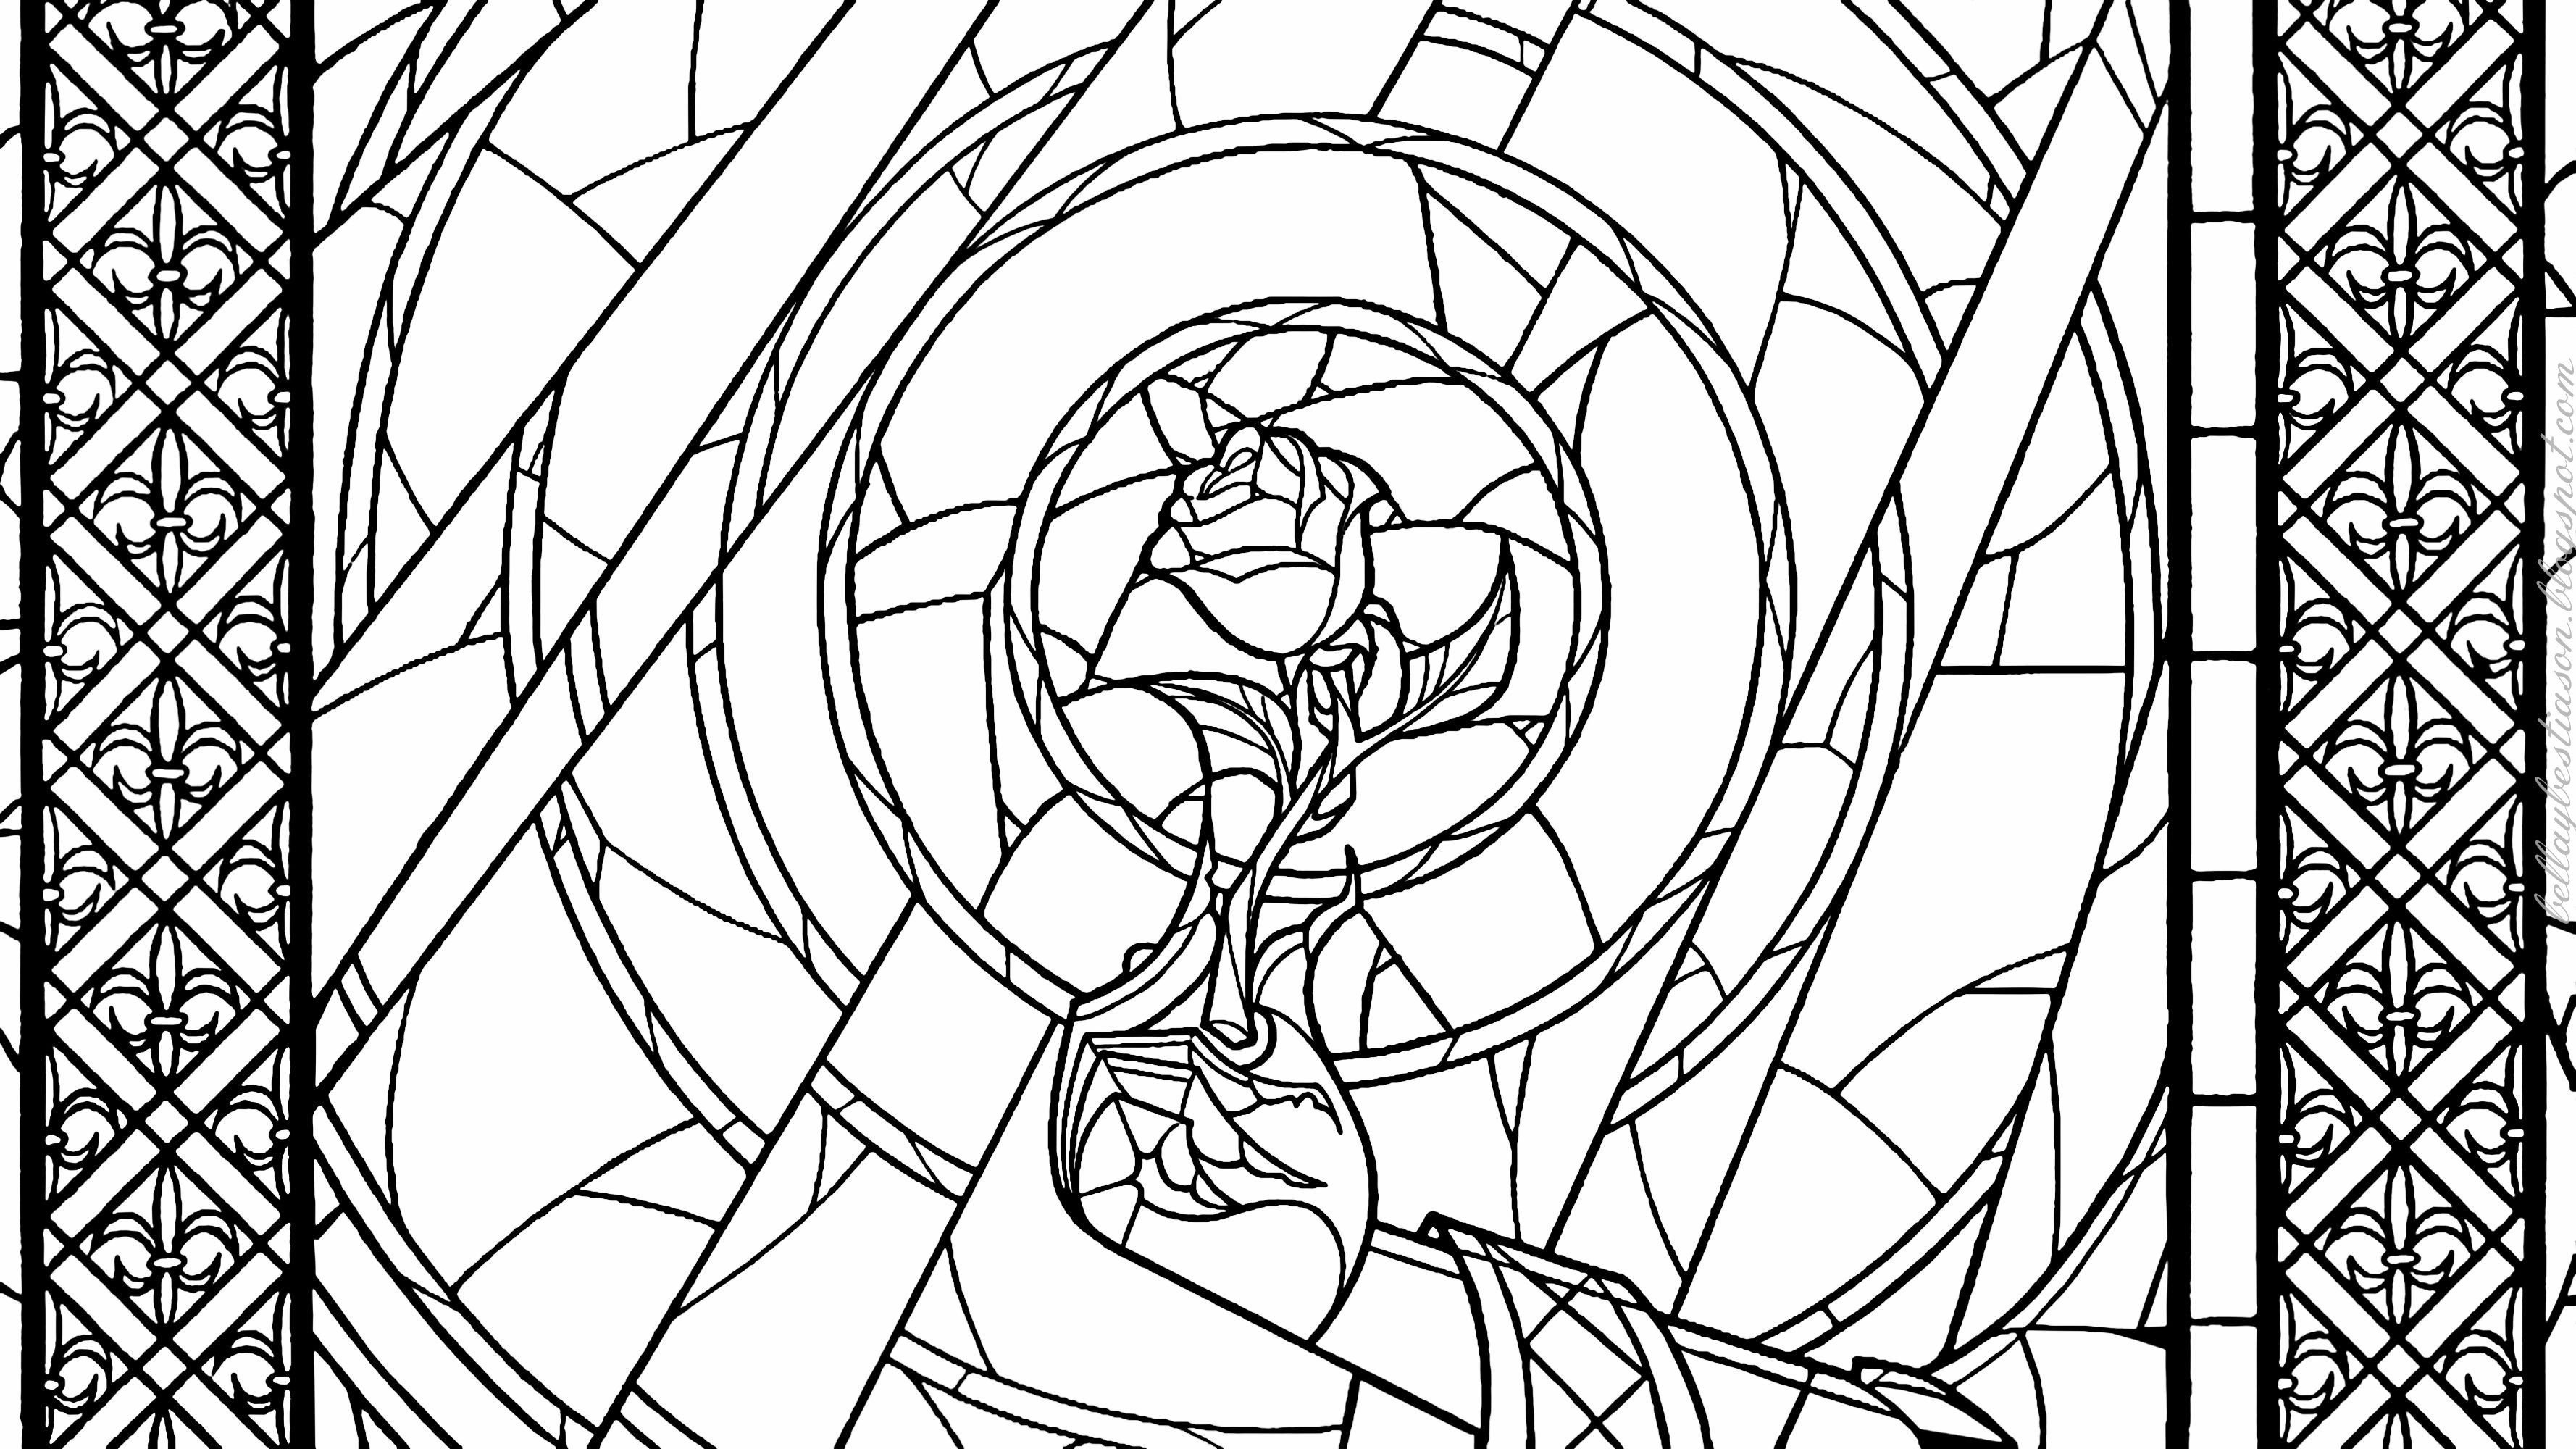 Stained Glass Coloring Pages 9 Jpg 493 541 With Images